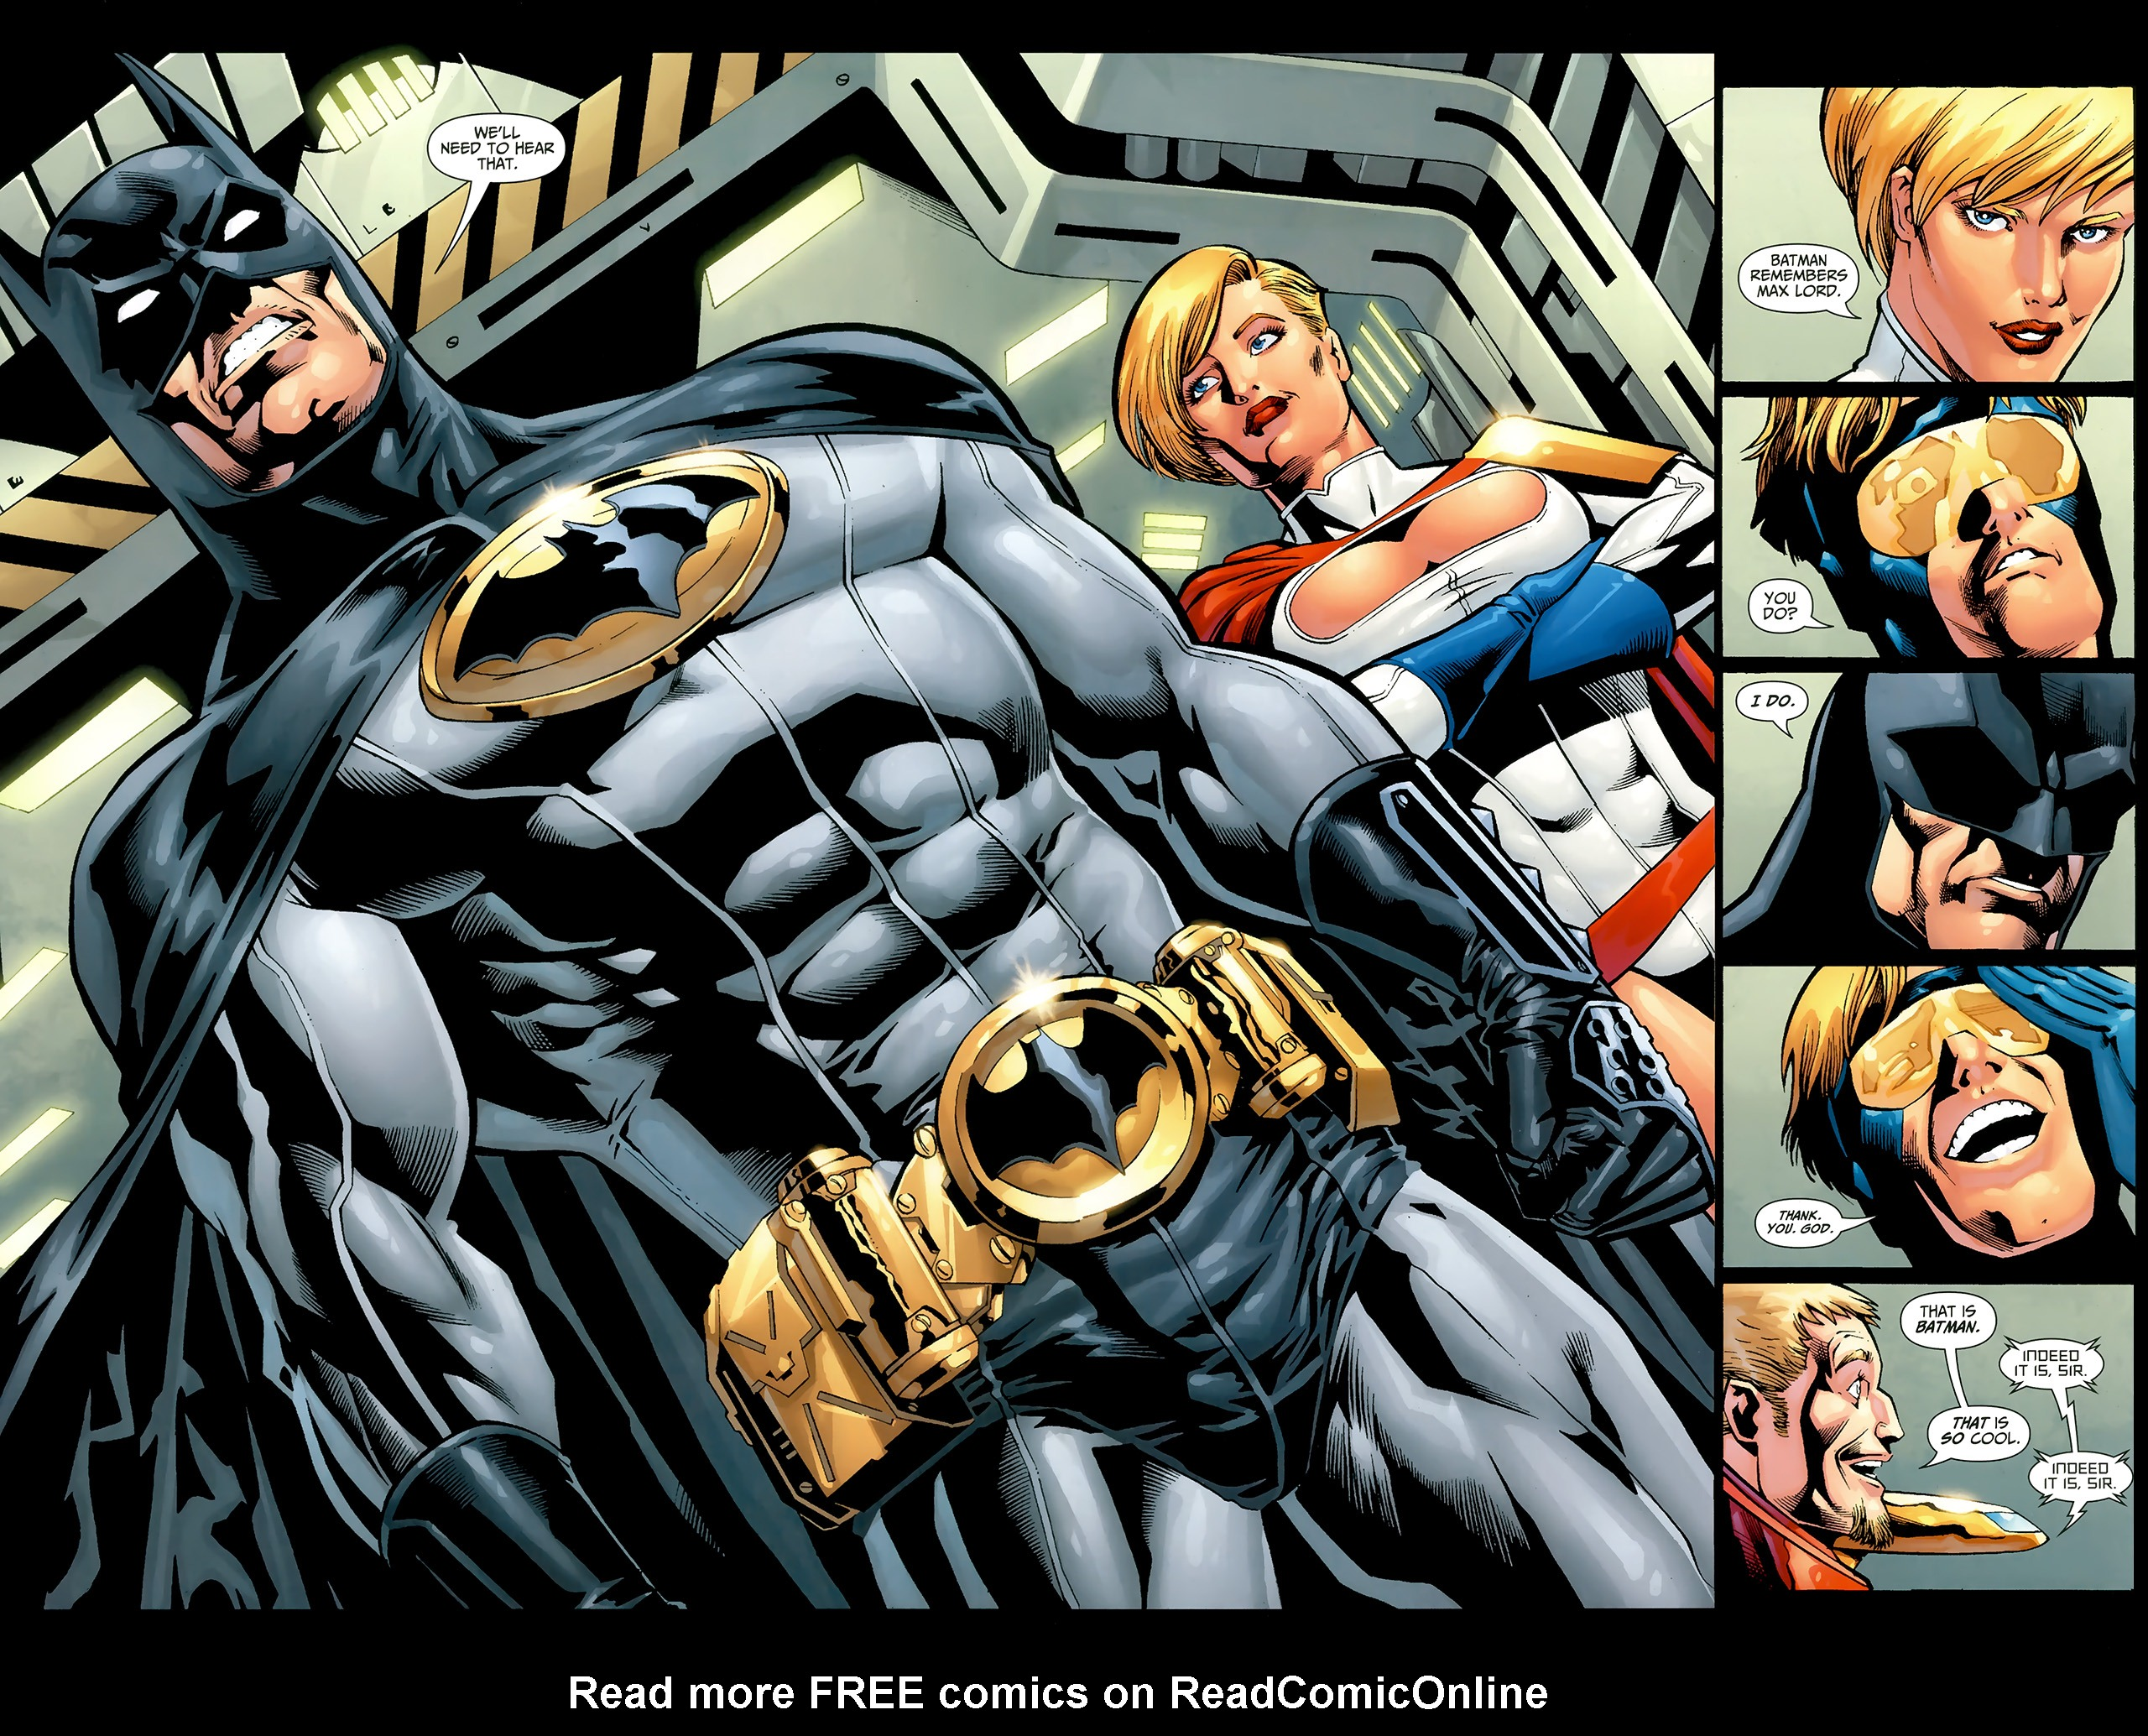 Read online Justice League: Generation Lost comic -  Issue #22 - 10